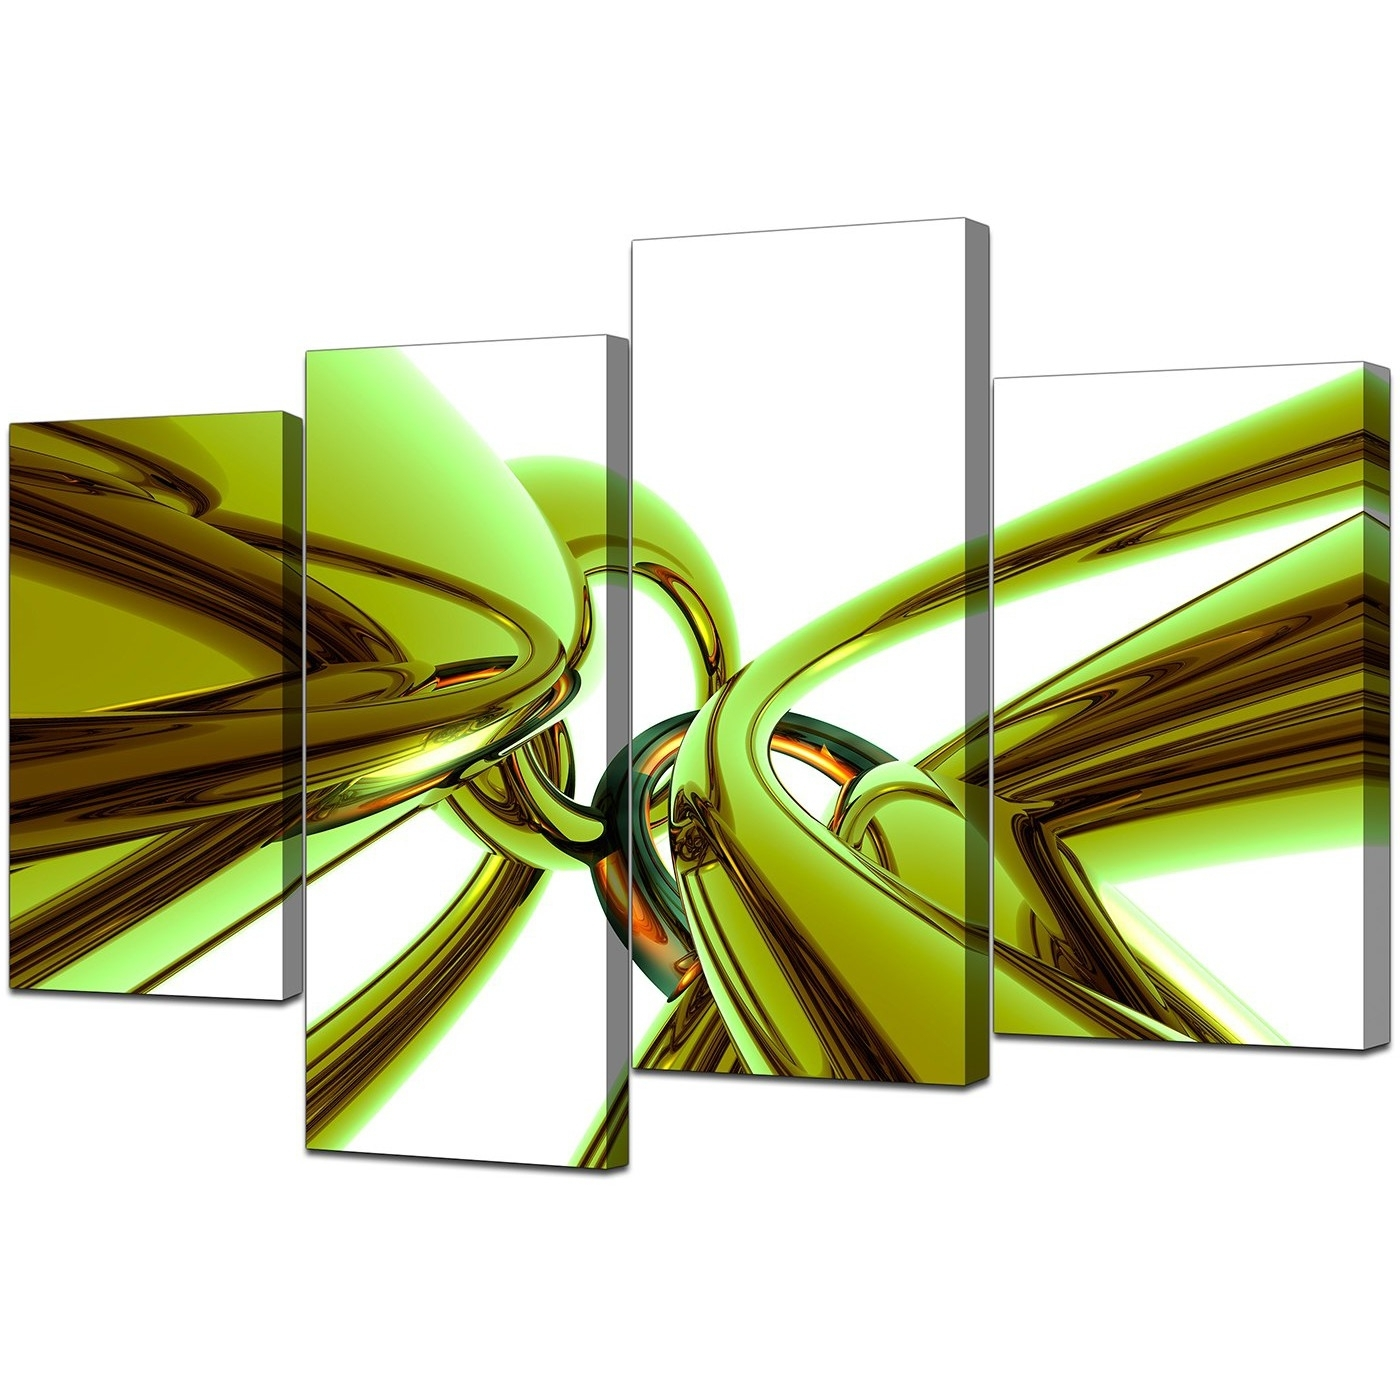 Lime Green Abstract Wall Art Within Well Liked Abstract Canvas Wall Art In Green For Your Living Room – Set Of 4 (Gallery 4 of 15)